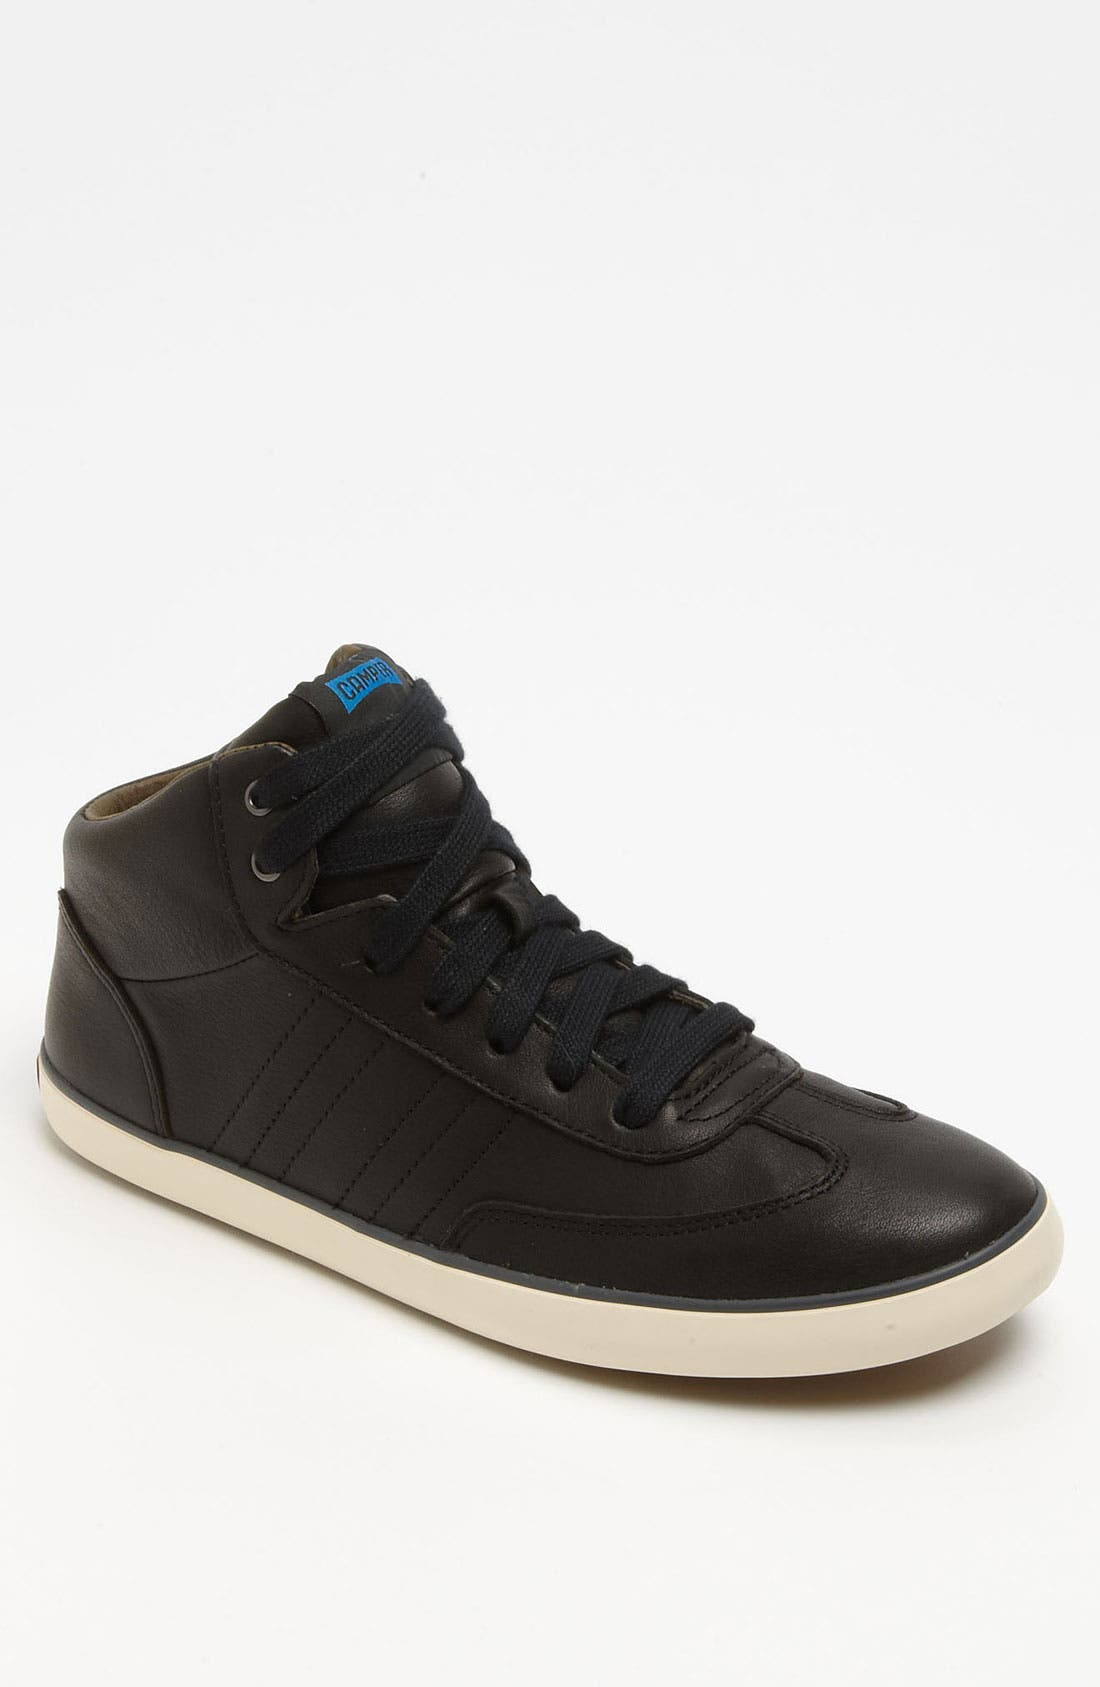 Main Image - Camper 'Persil' Sneaker (Online Only)